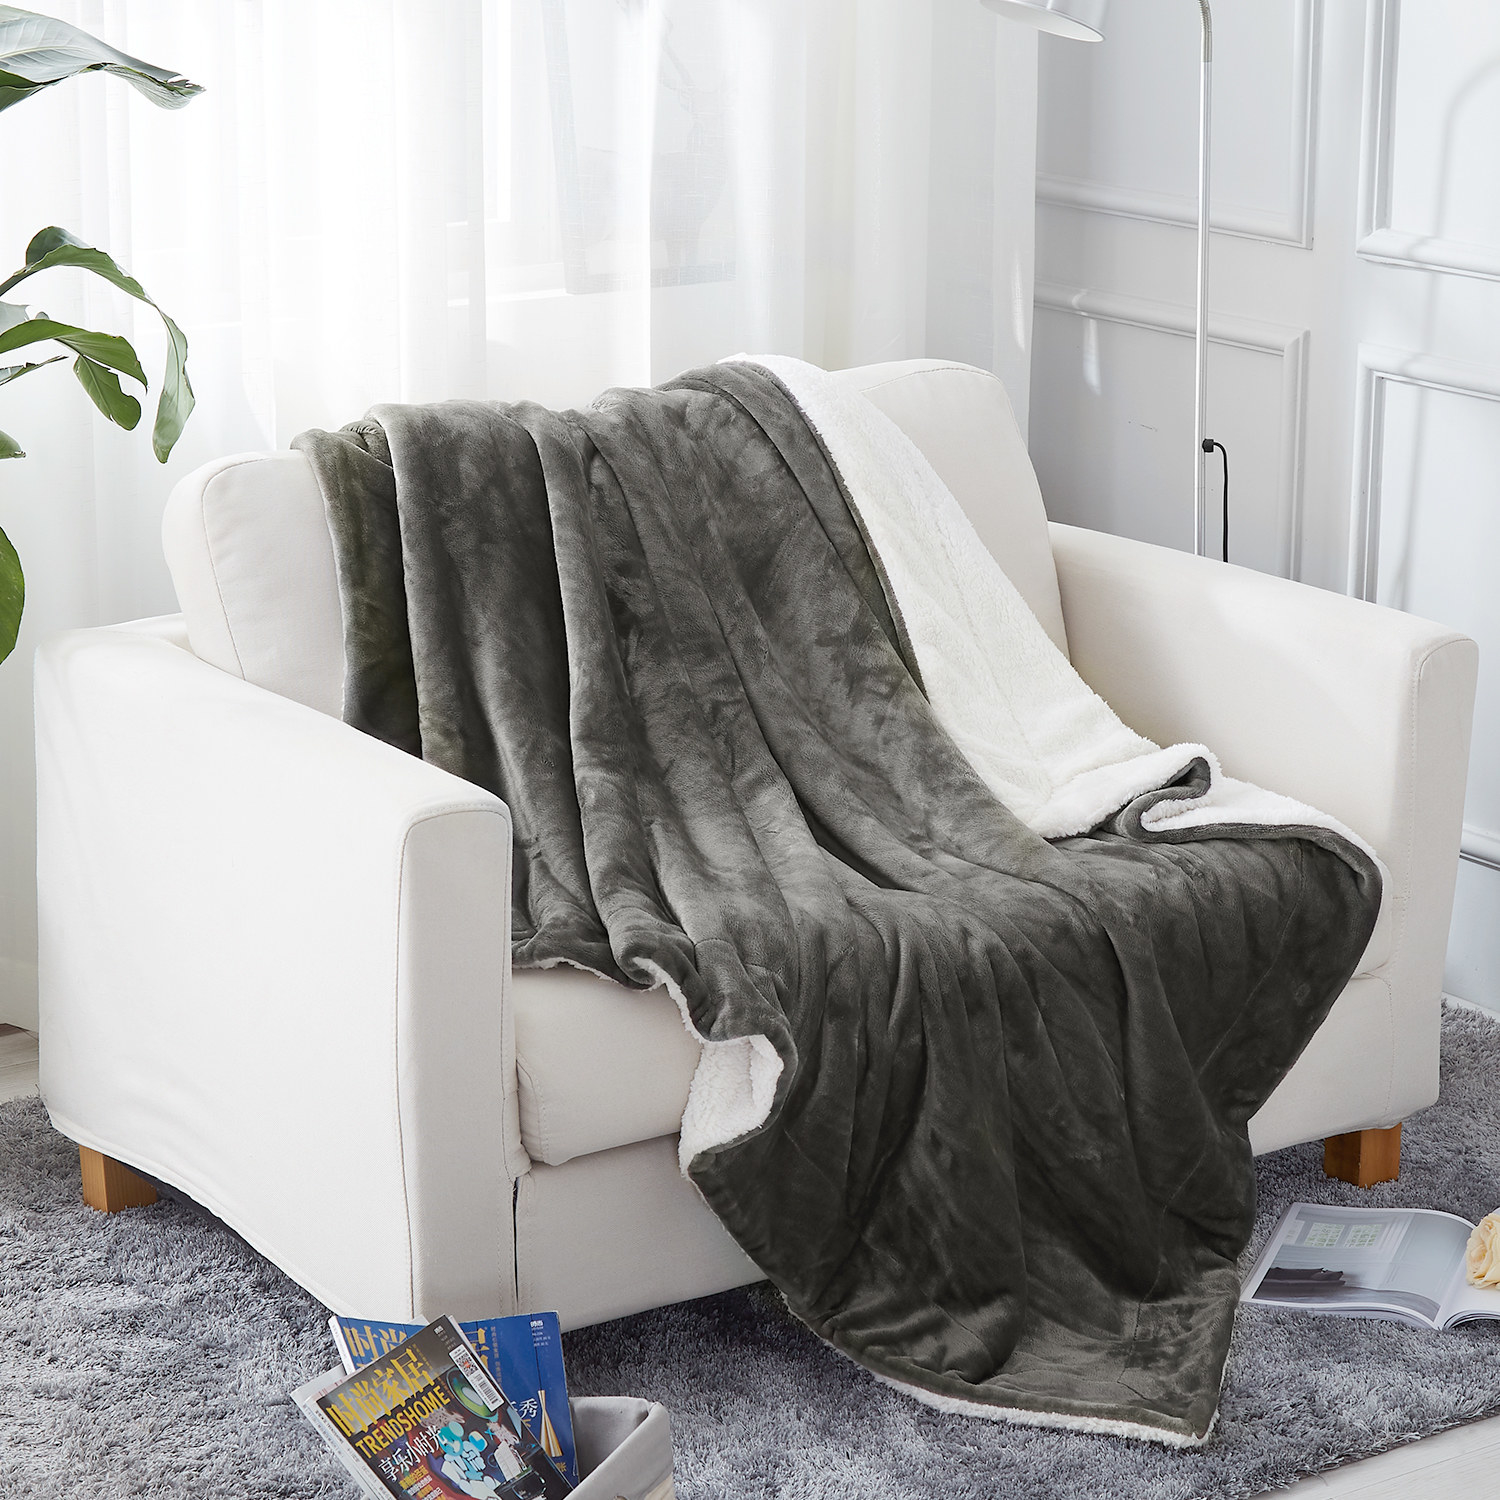 the sherpa throw in gray sprawled on top of a couch